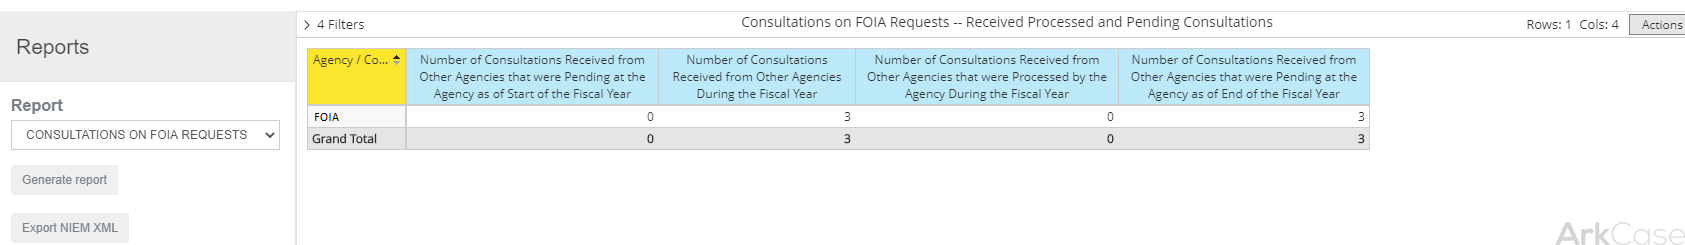 Consultations on FOIA Requests -- Received, Processed, and Pending Consultations